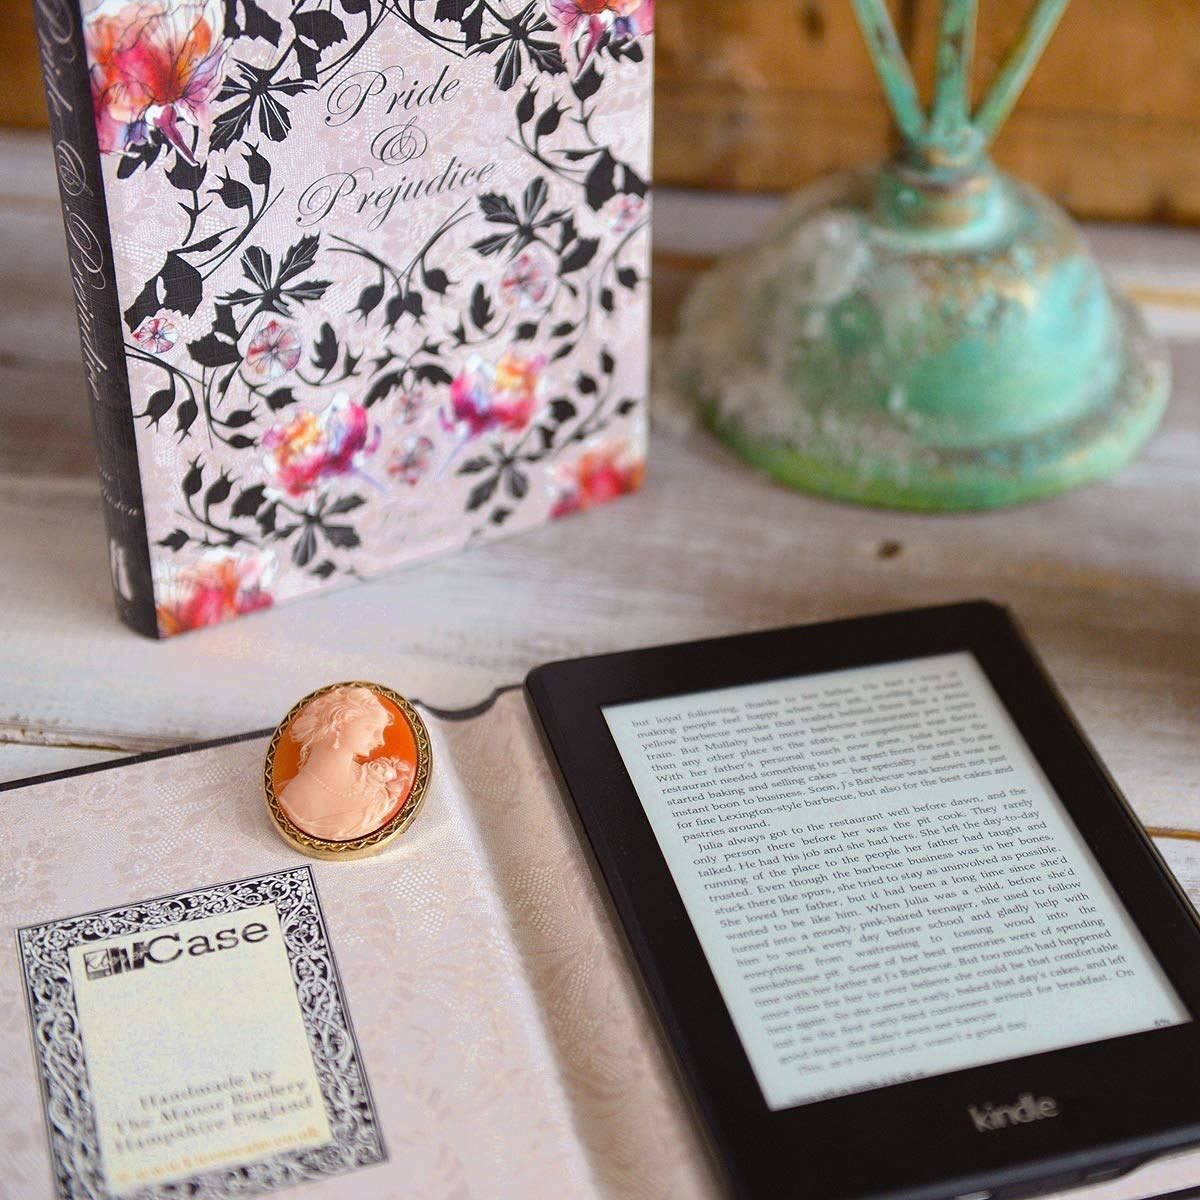 how to gift a kindle book uk